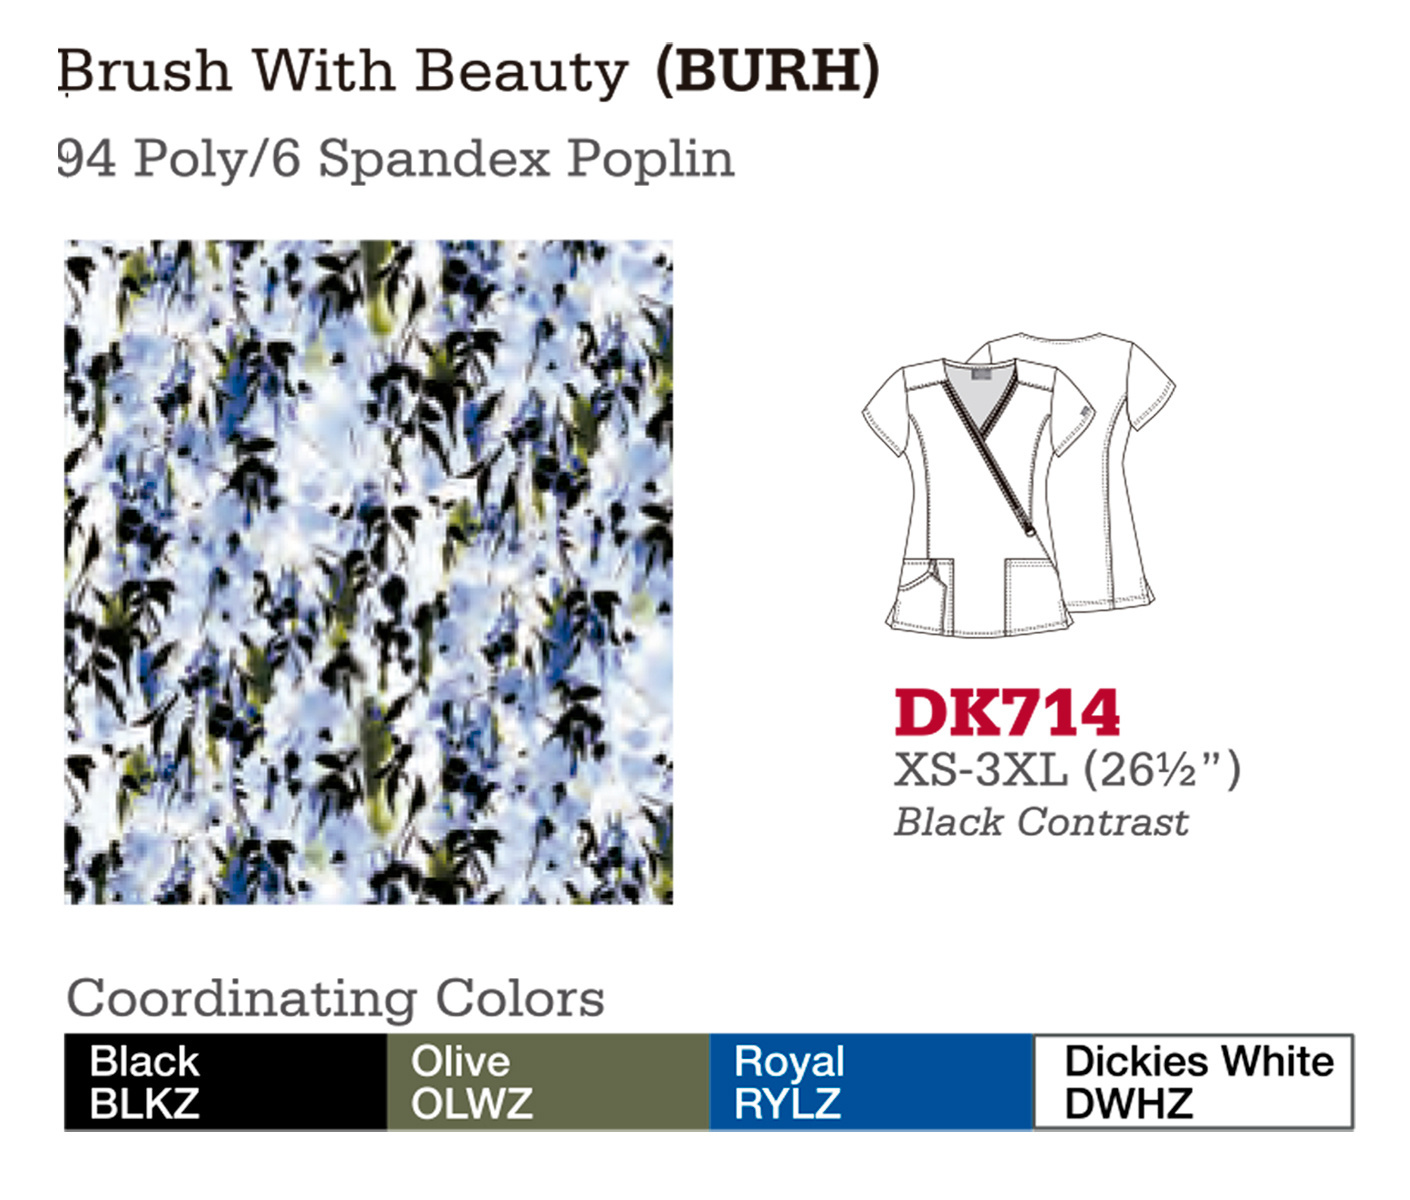 Brush With Beauty. DK714.